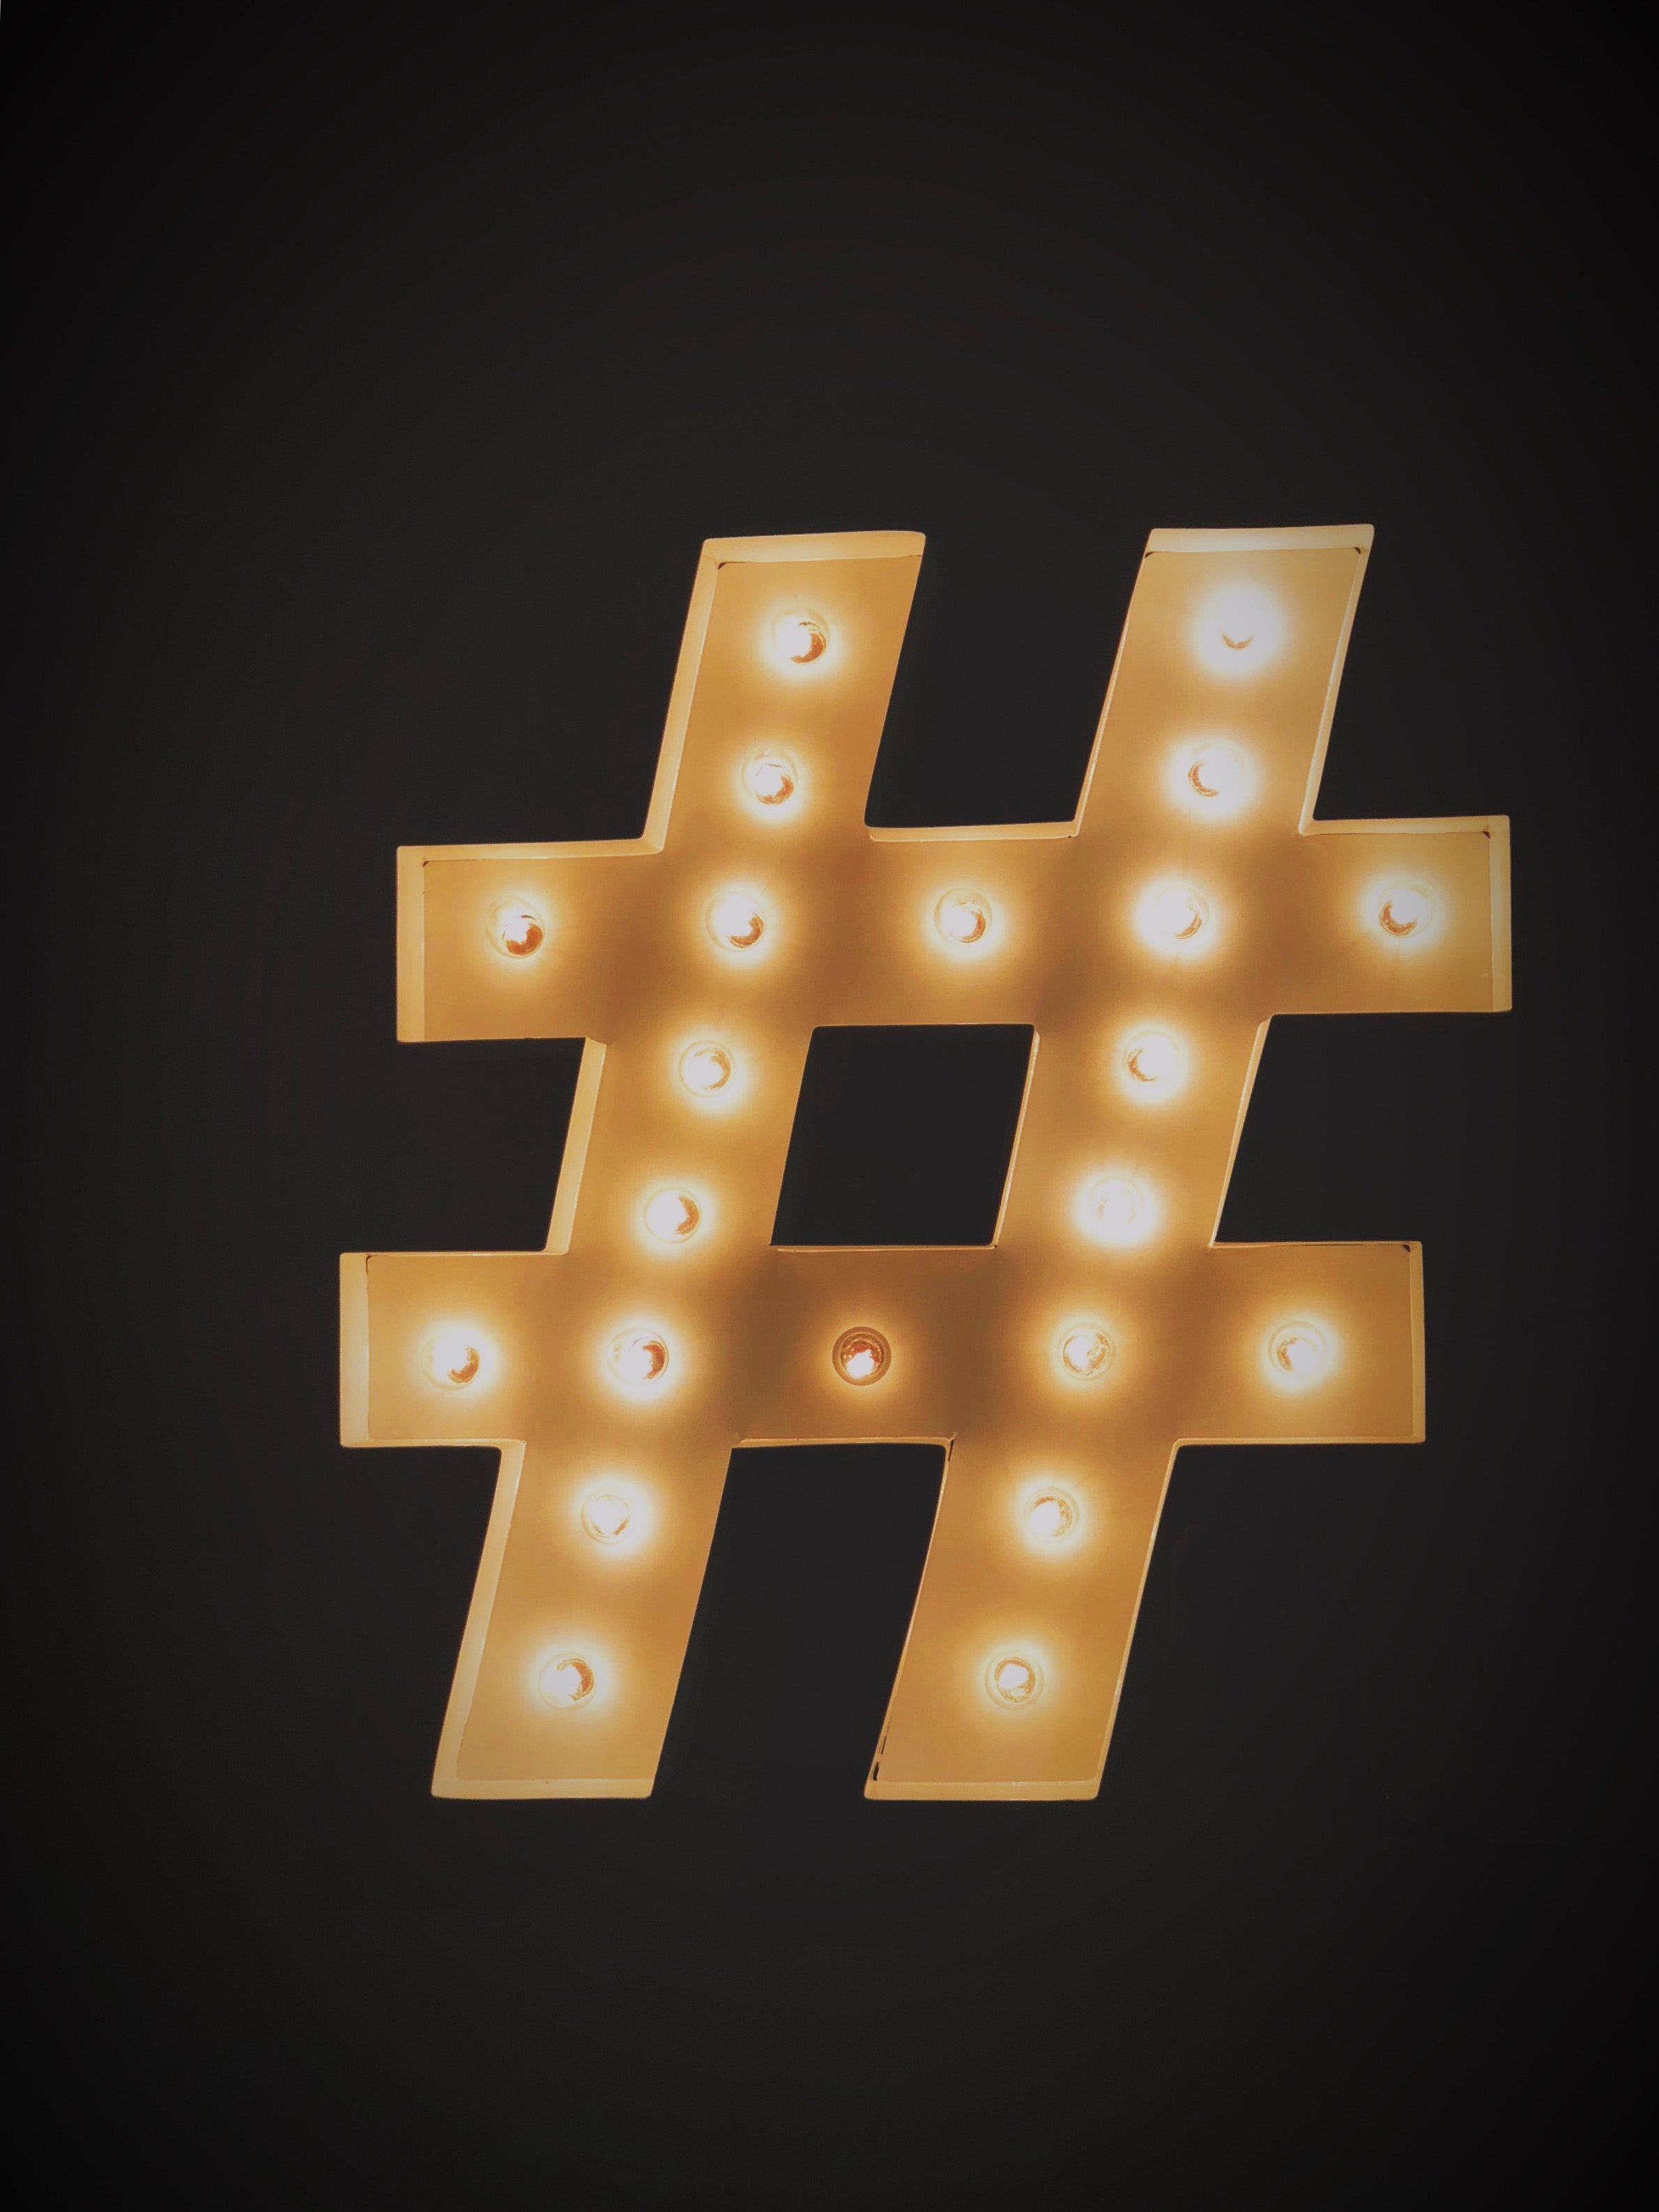 uso-hashtags-redes-sociales